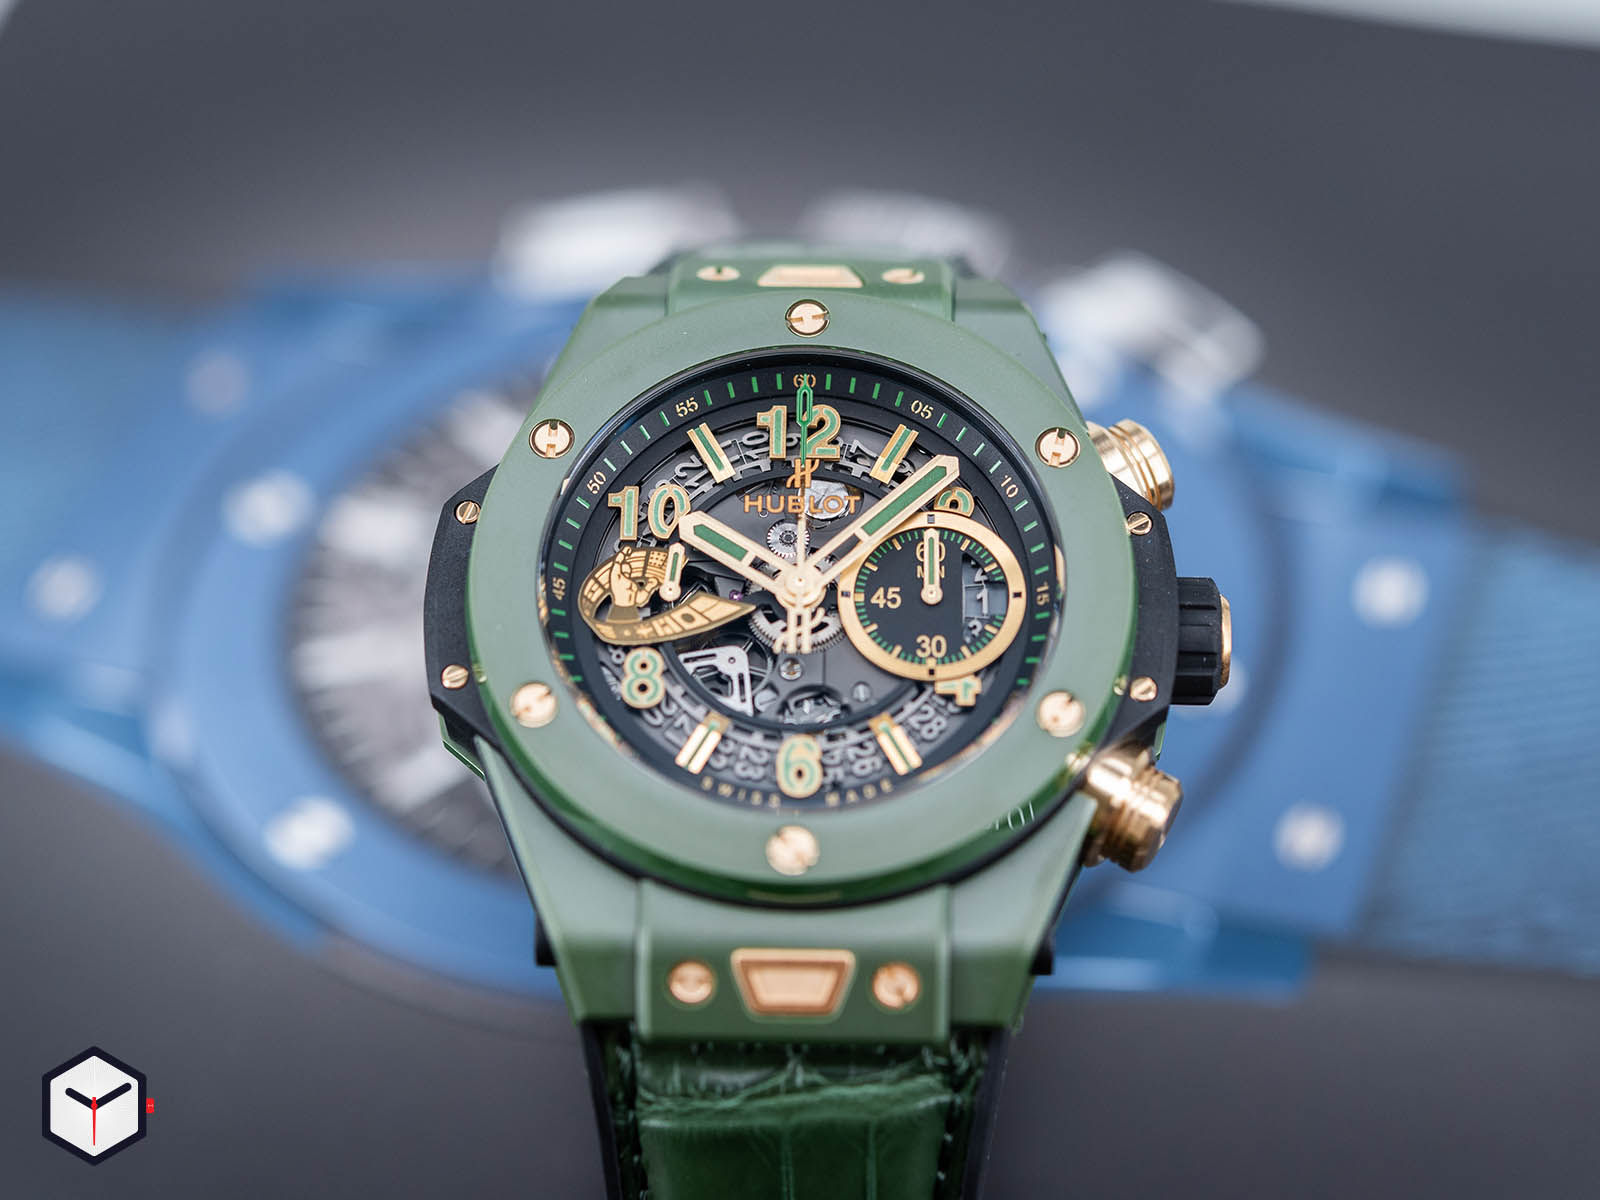 411-gx-1189-lr-wbc19-hublot-big-bang-unico-wbc-3.jpg